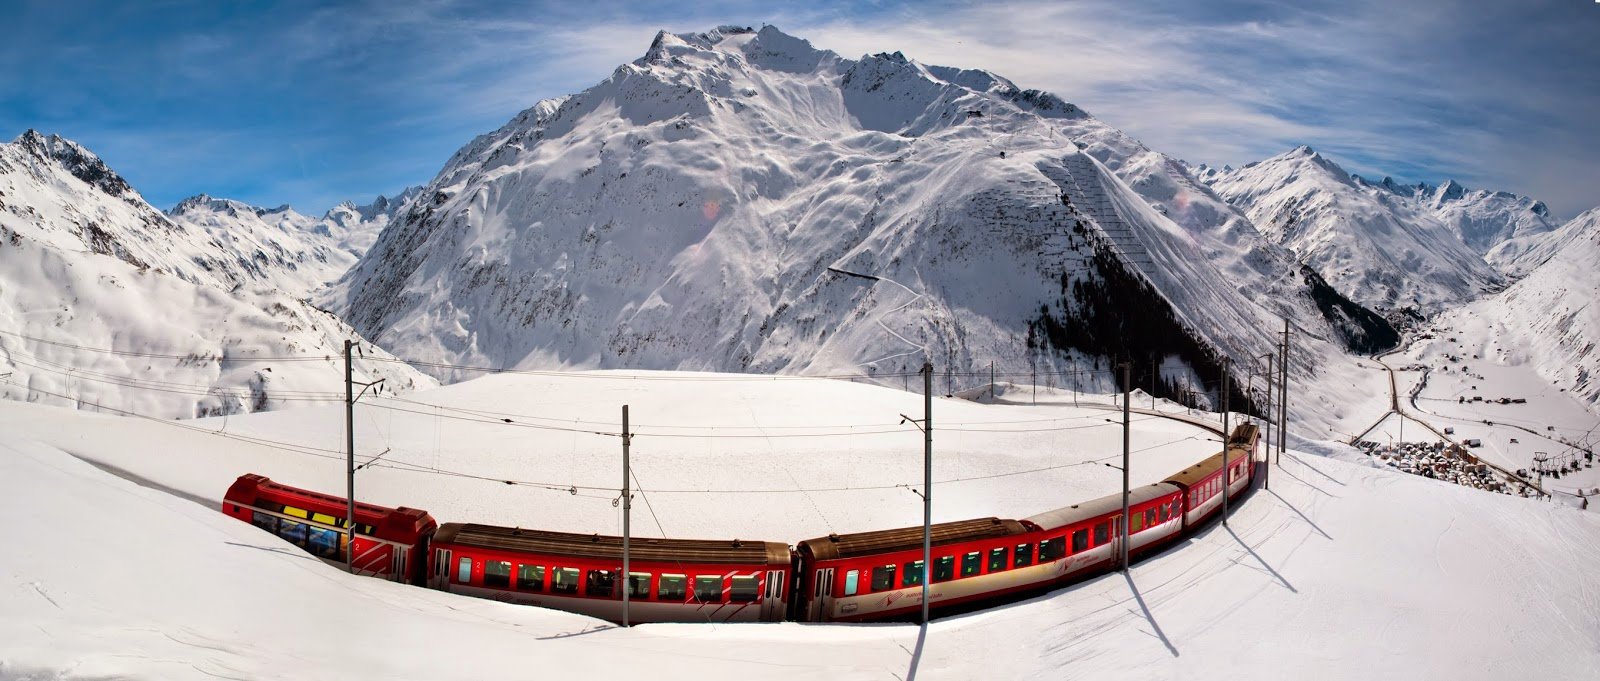 AndermattSwissAlps_Andermatt_GlacierExpress_Winter-ASA